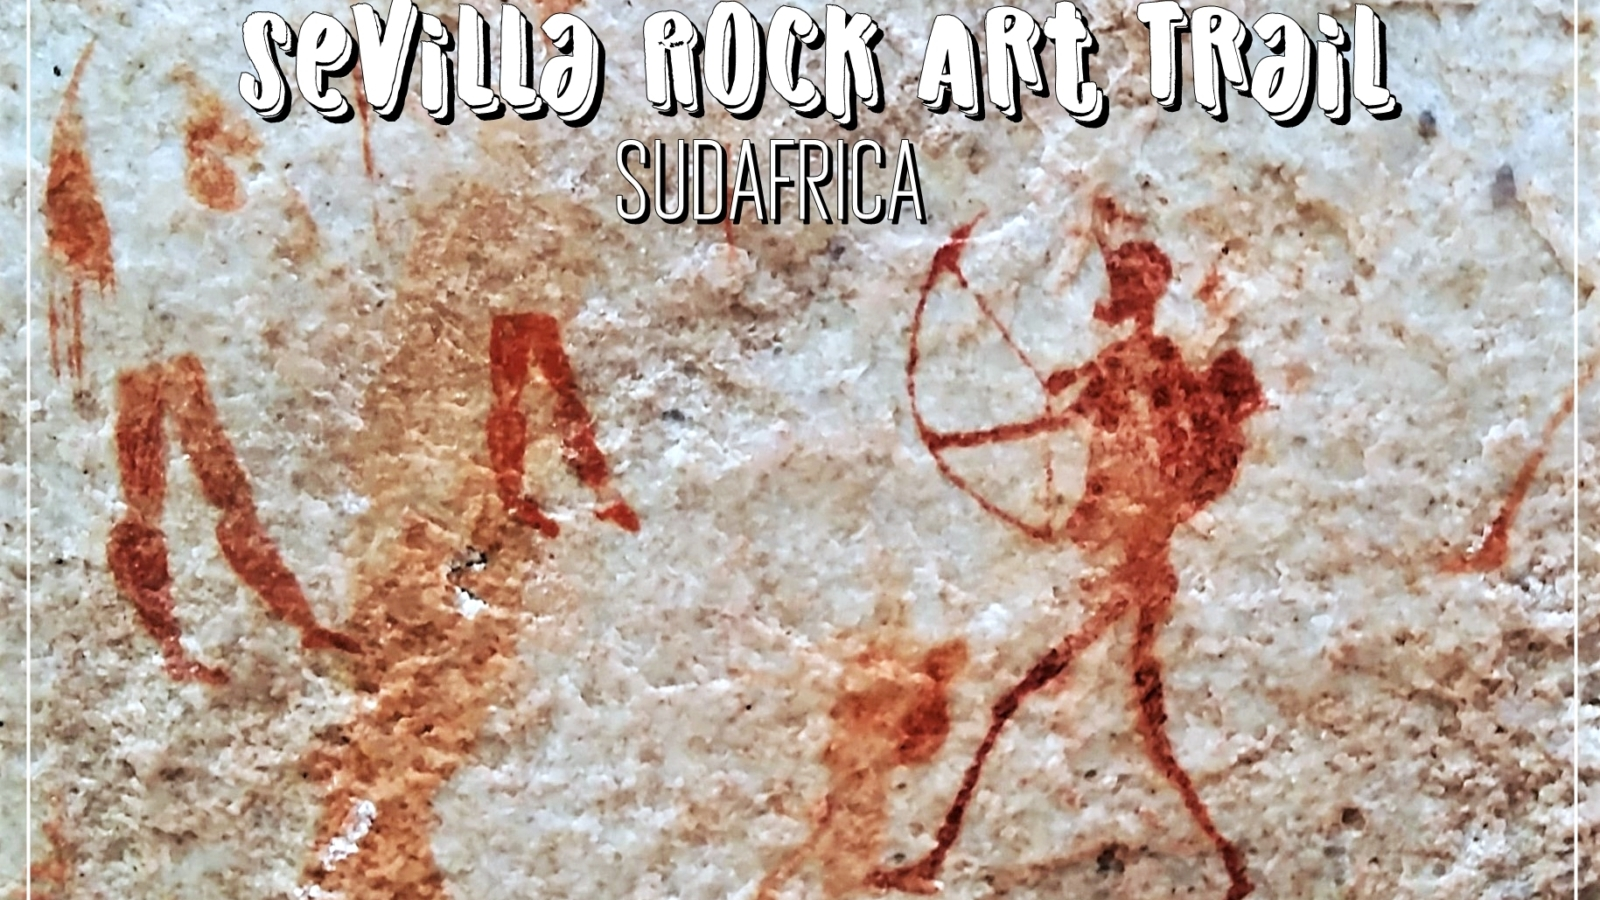 Sevilla Rock Art Trail, i graffiti dei nostri antenati